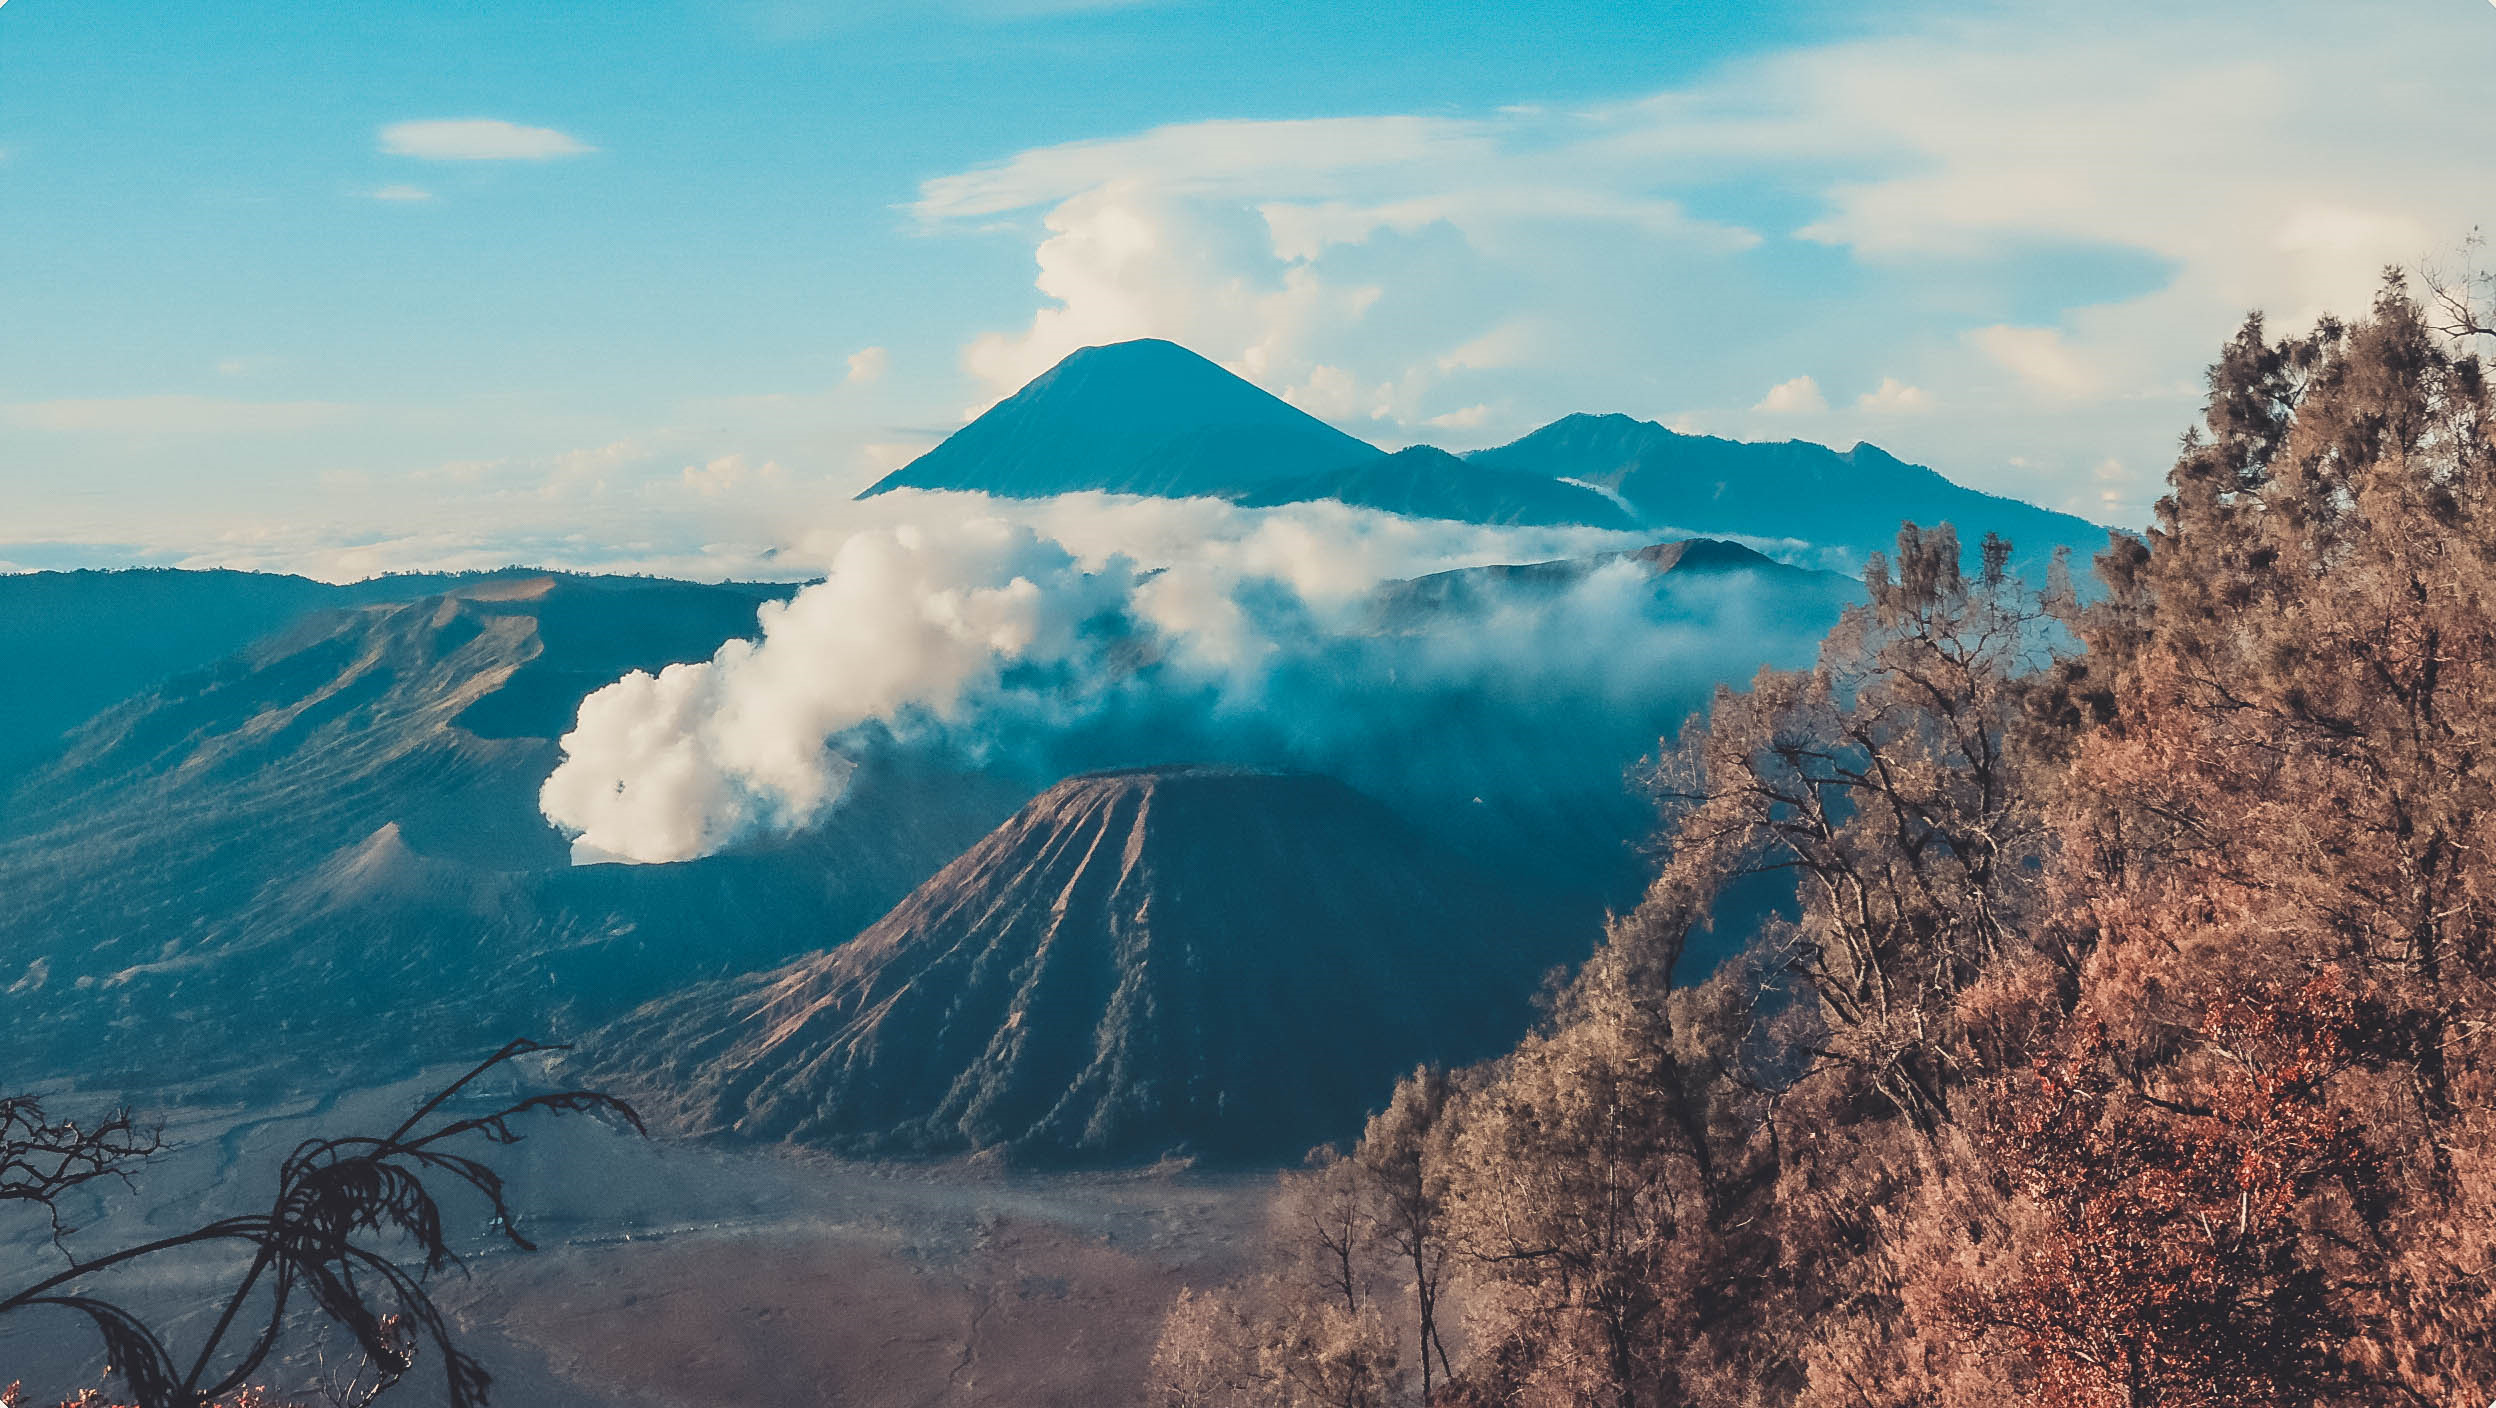 Den Indonesia, cham chan toi mieng nui lua Bromo hinh anh 44